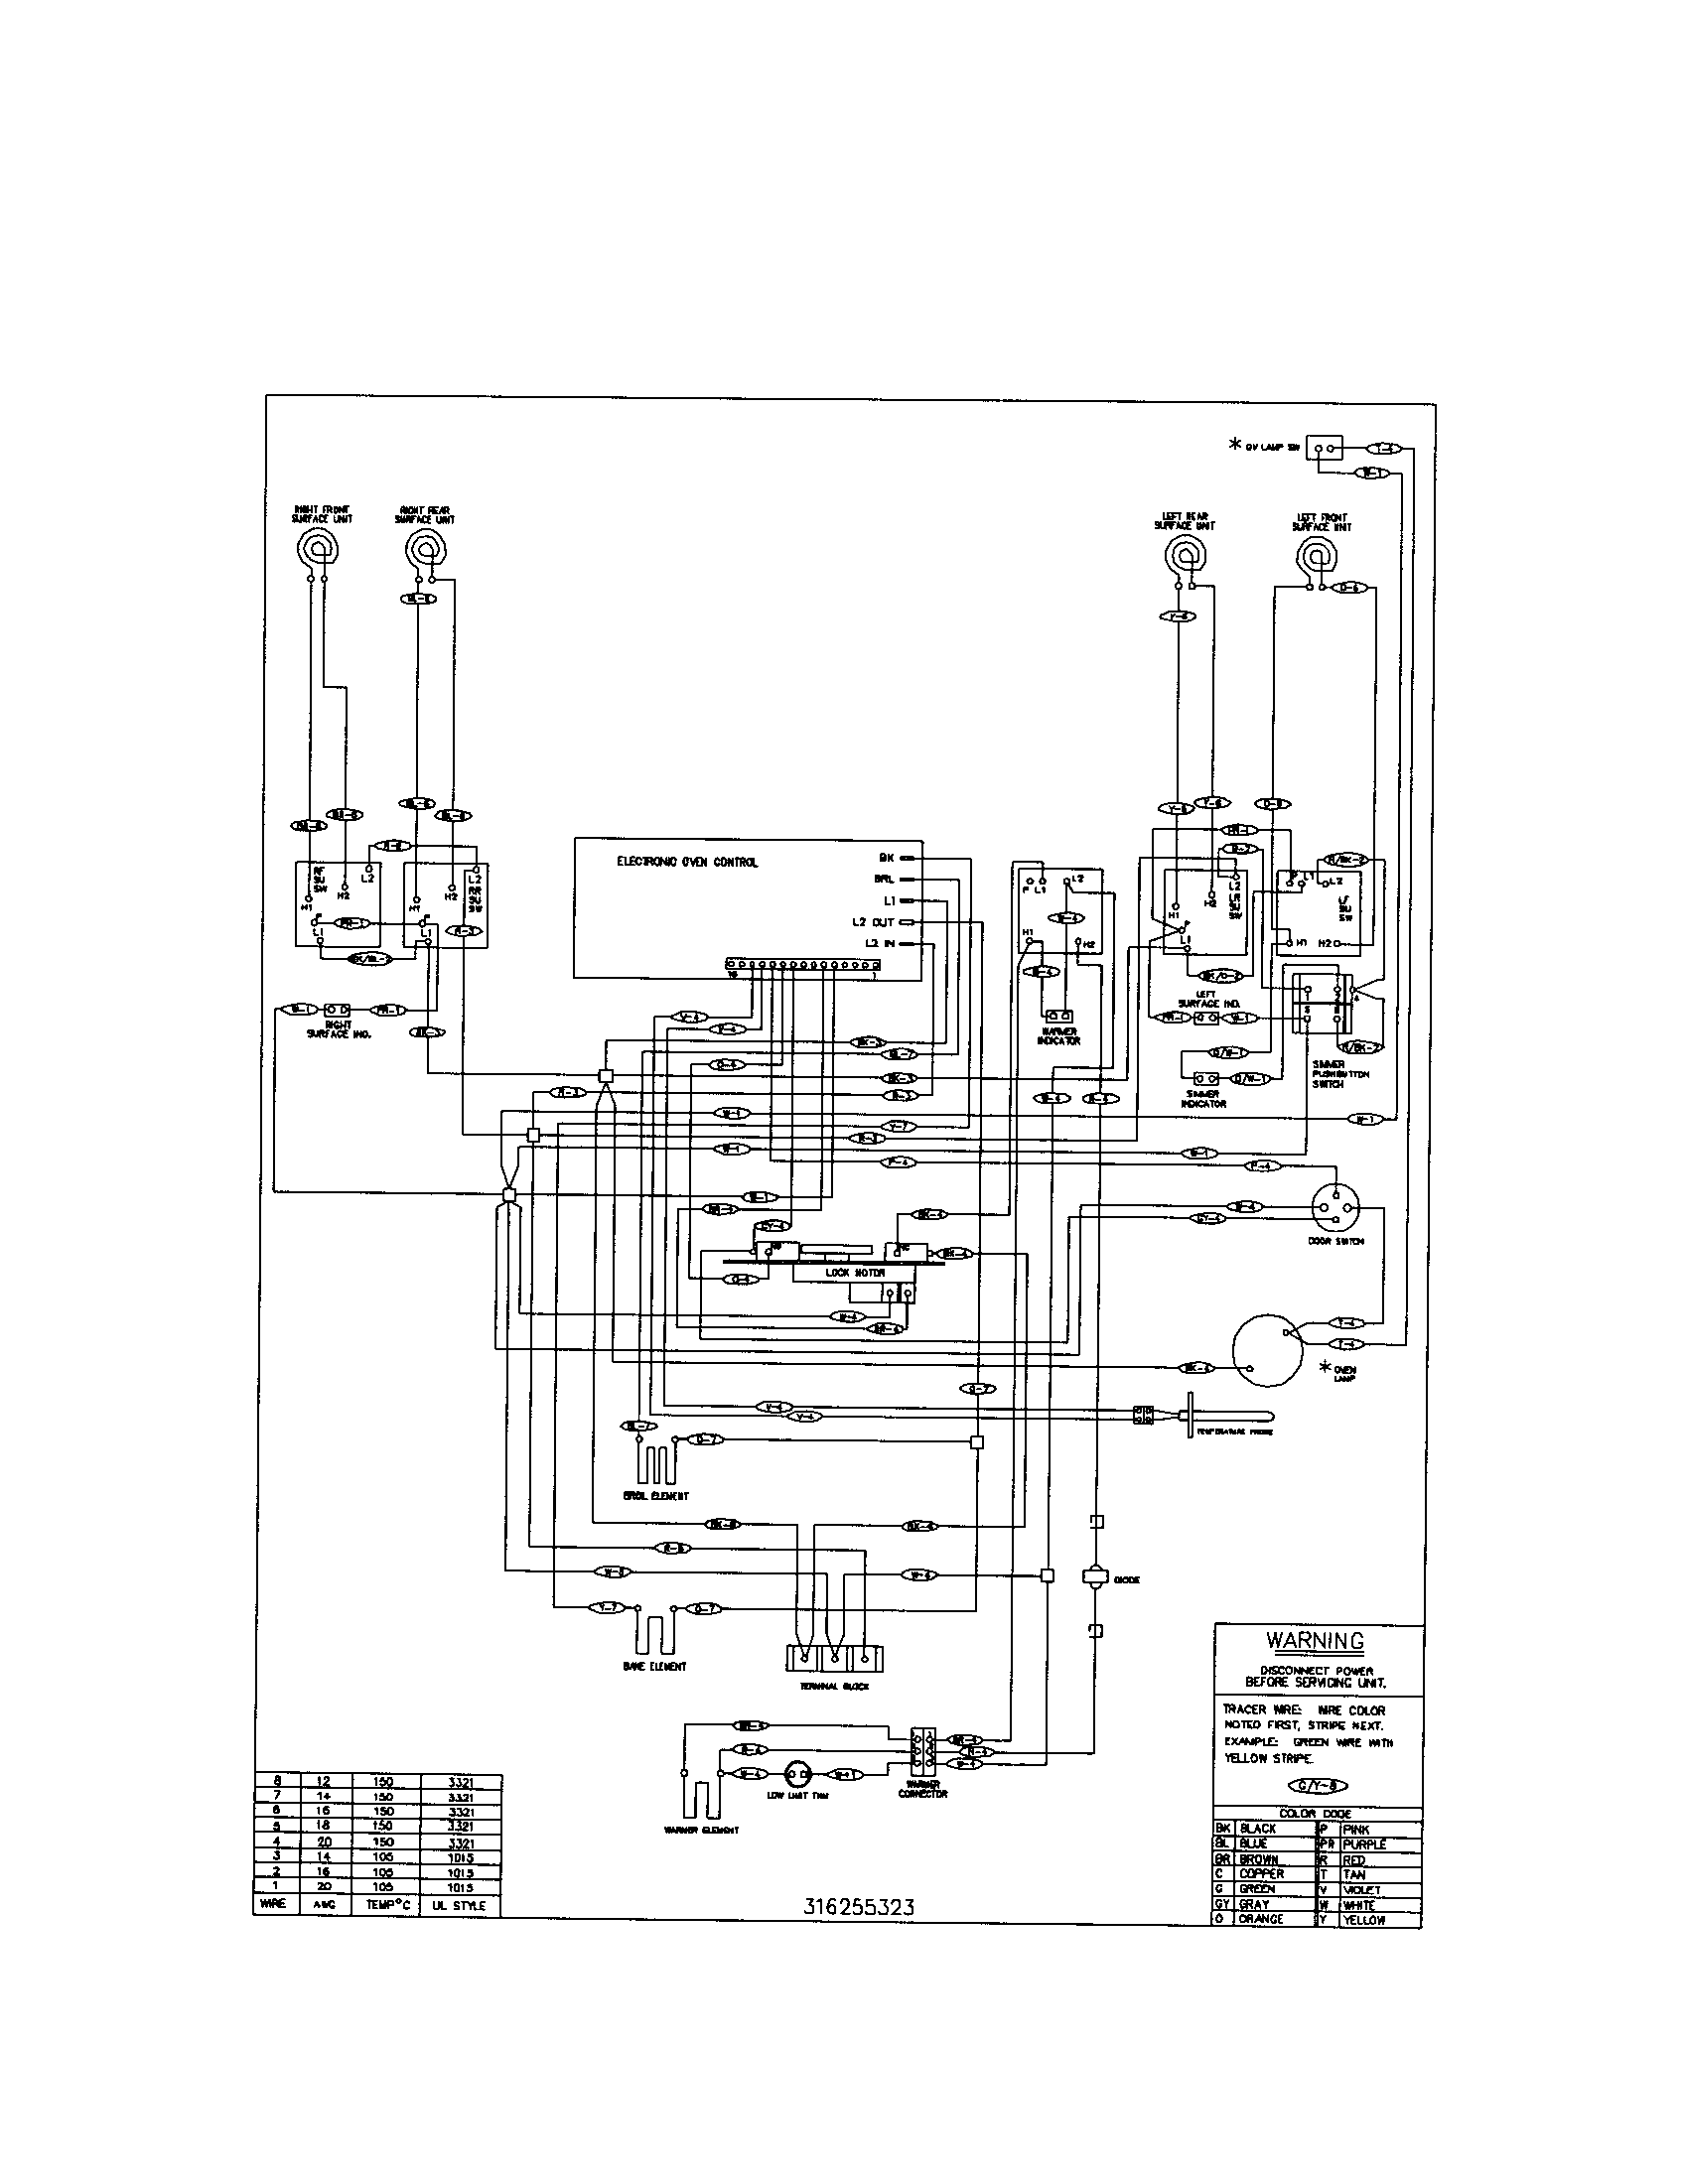 kenmore wall oven wiring diagram